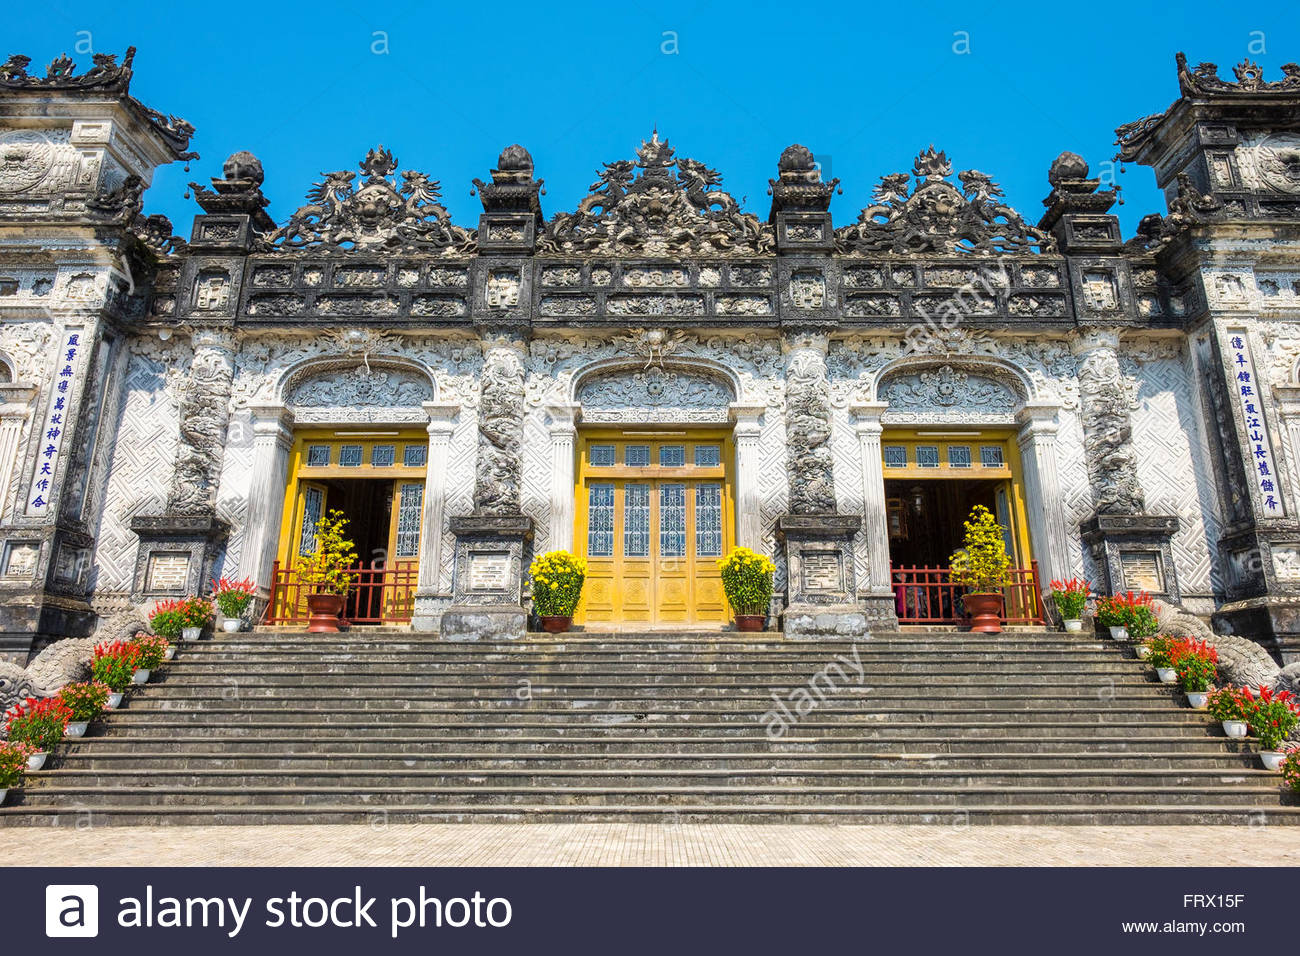 Tomb of Khai Dinh (Lang Khai Dinh), Huong Thuy District, Thua Thien-Hue Province, Vietnam - Stock Image